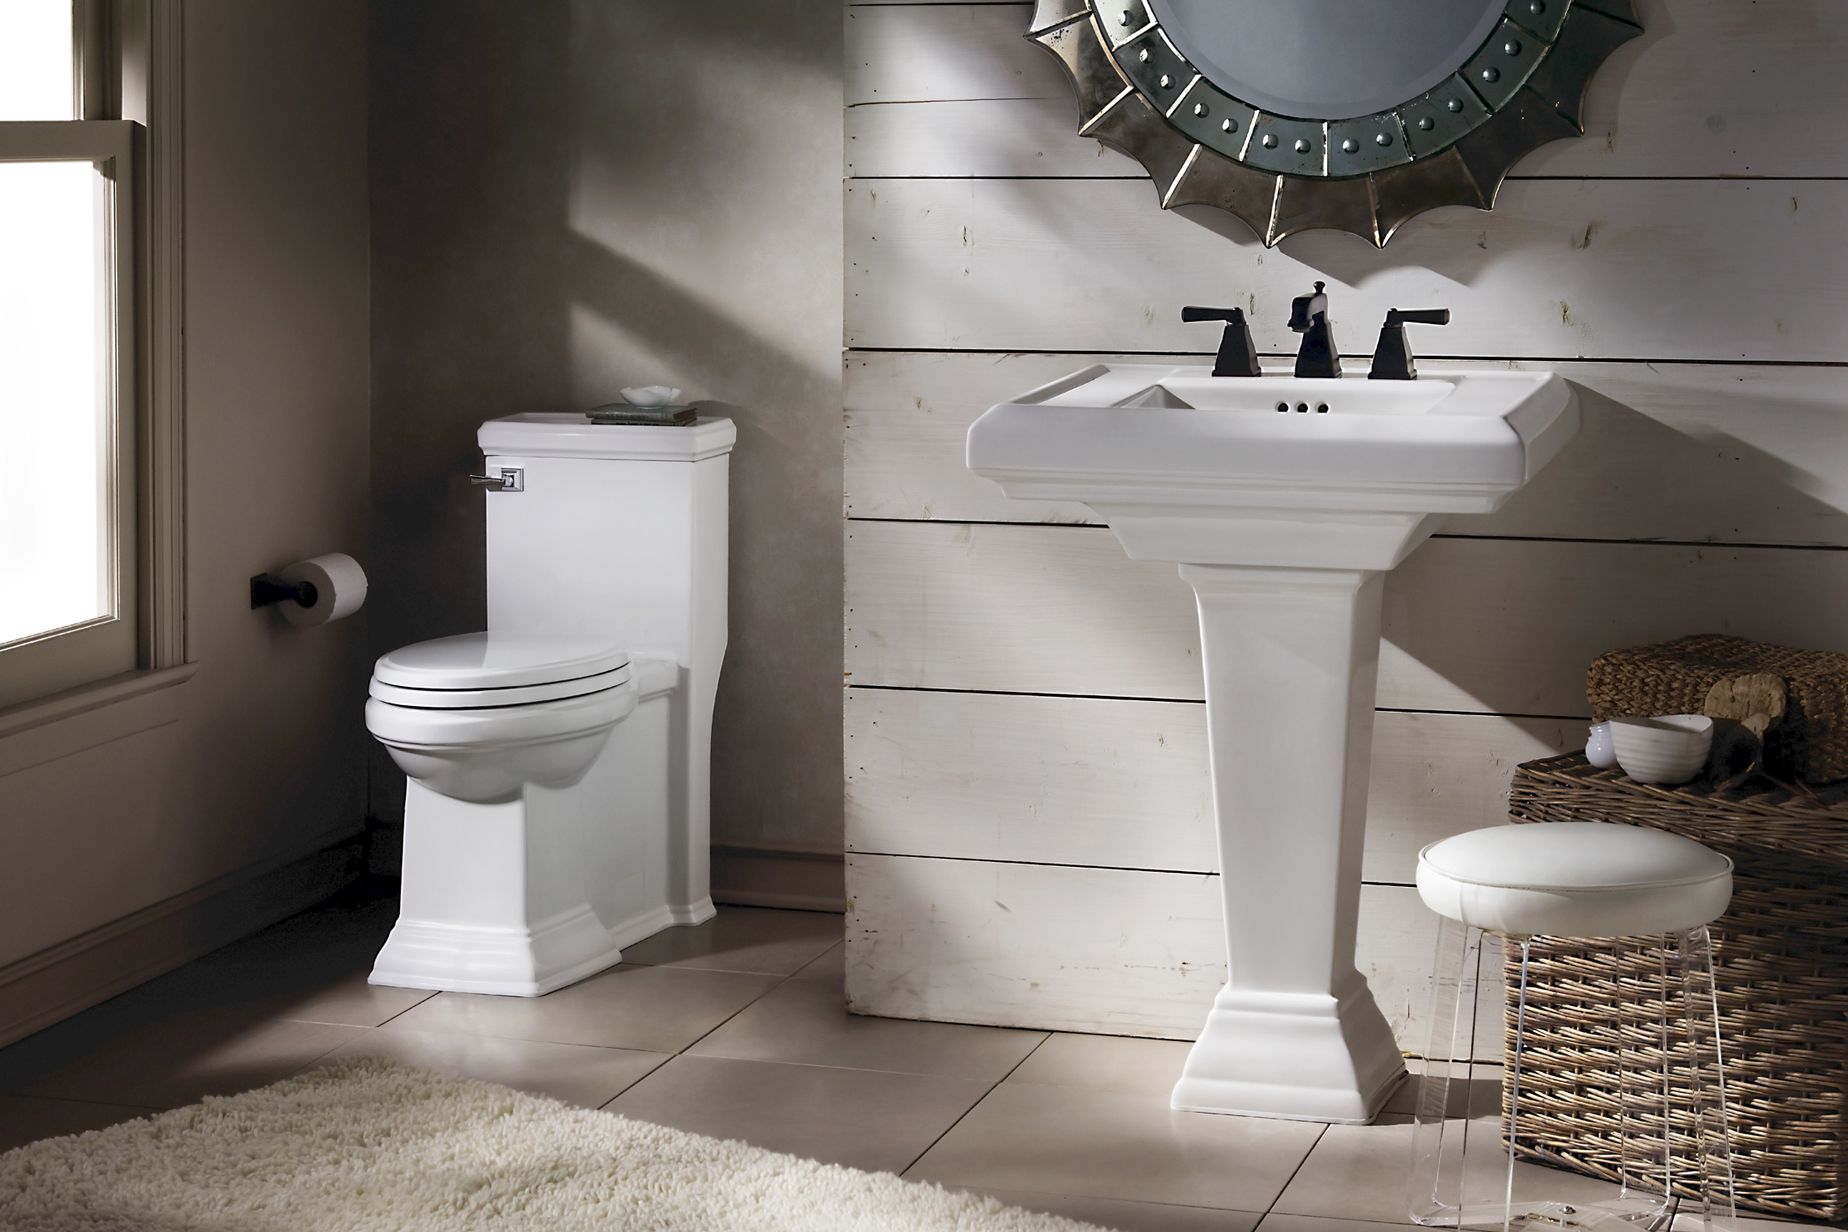 Stylish Bathroom With Toilet And Pedestal Sink By American